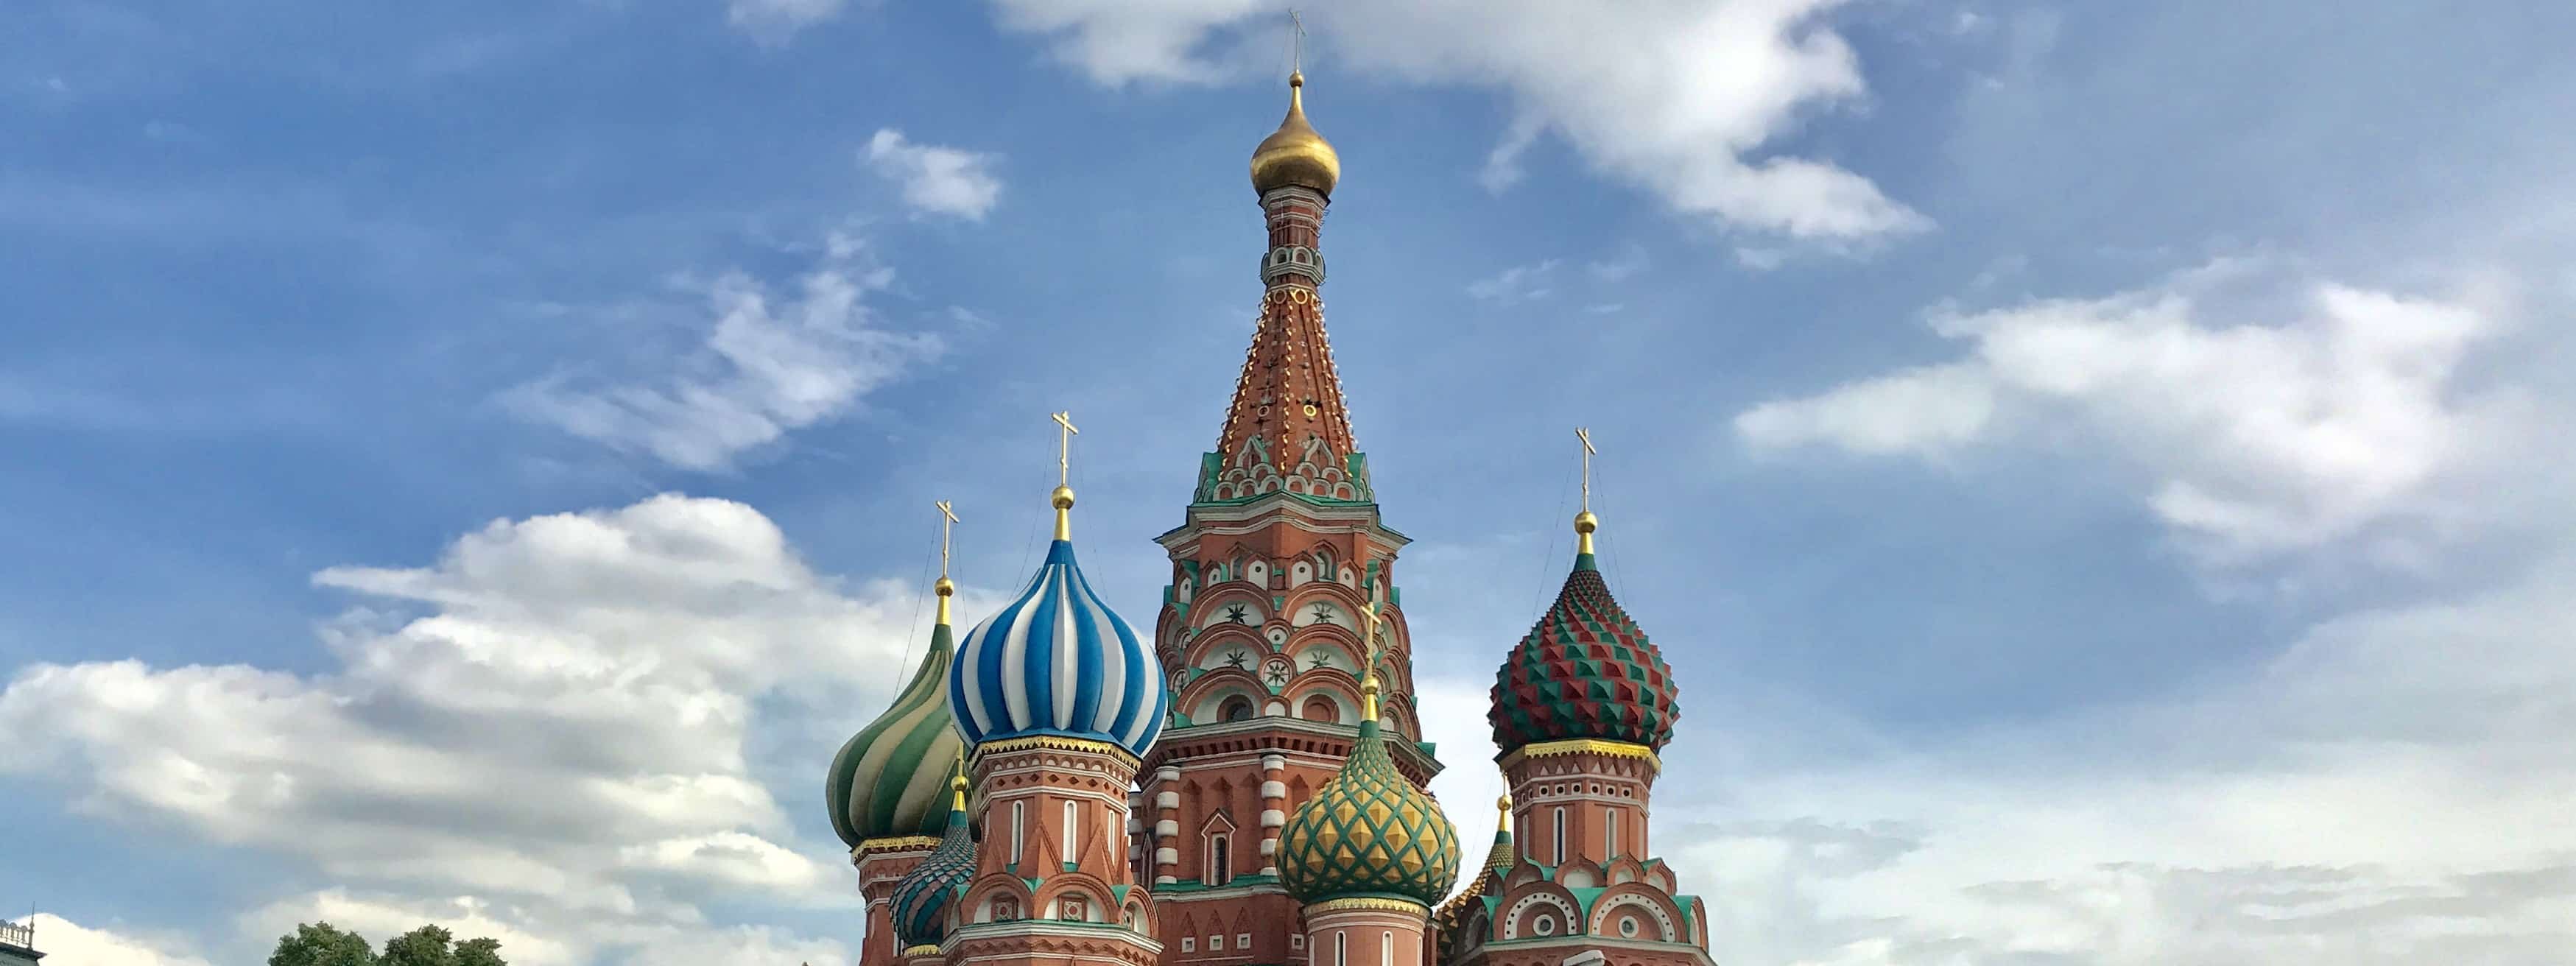 Moscow Basil's Cathedral Russia betternotstop